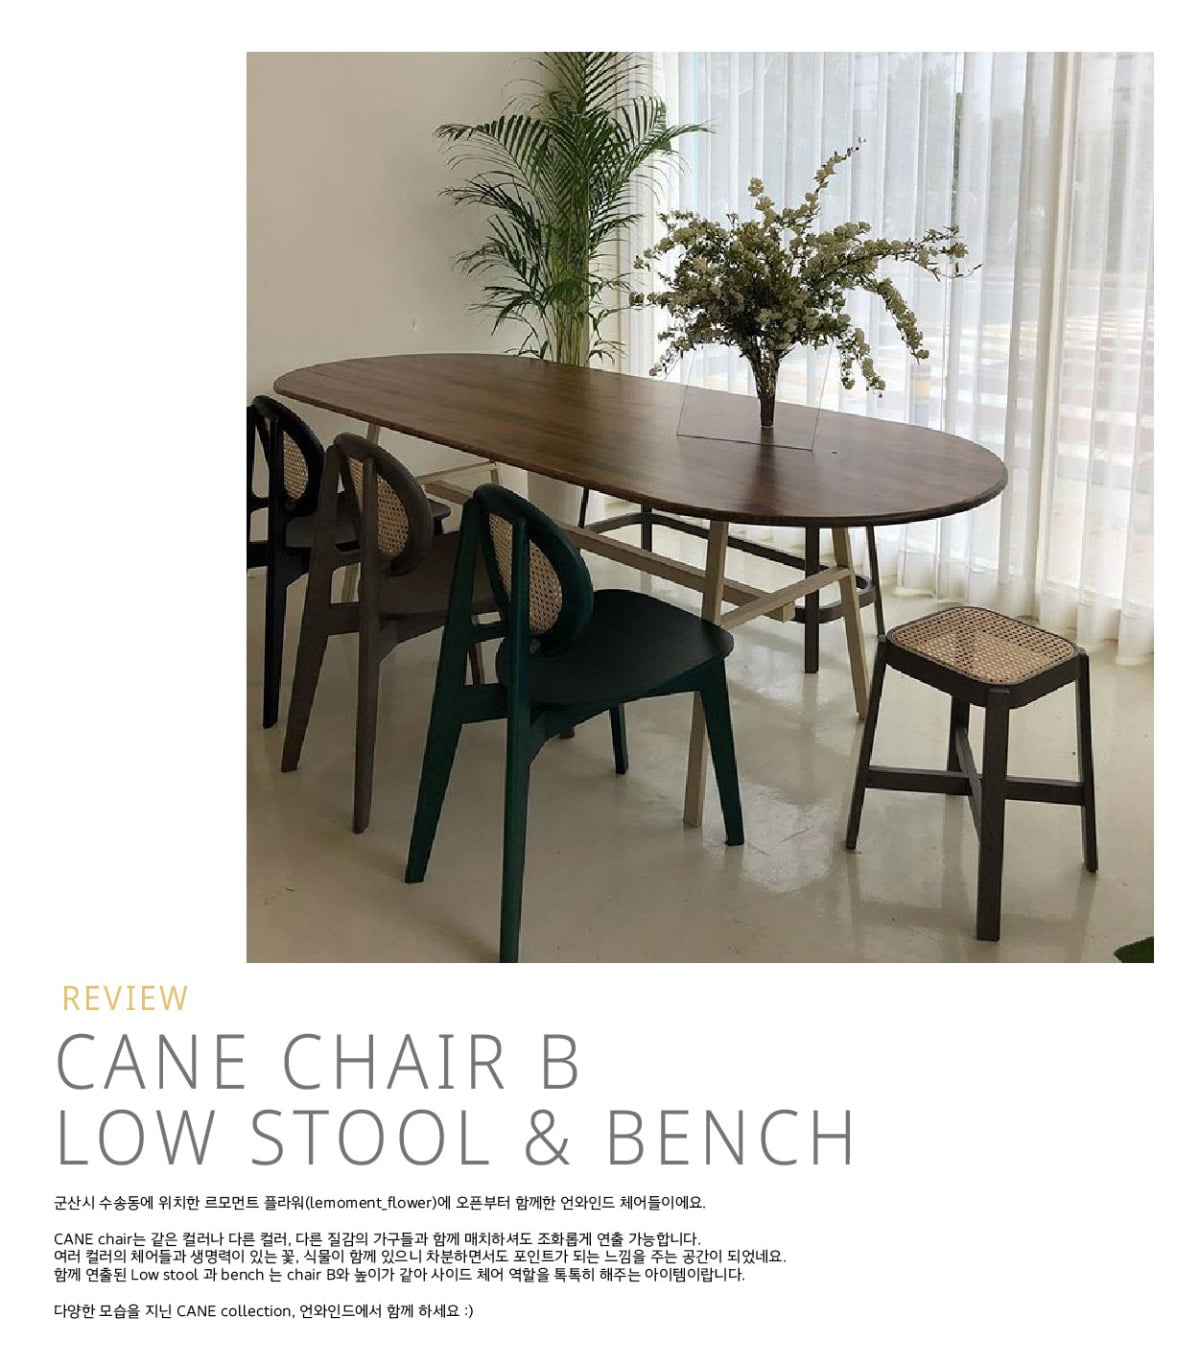 CANE chair B & low stool & bench